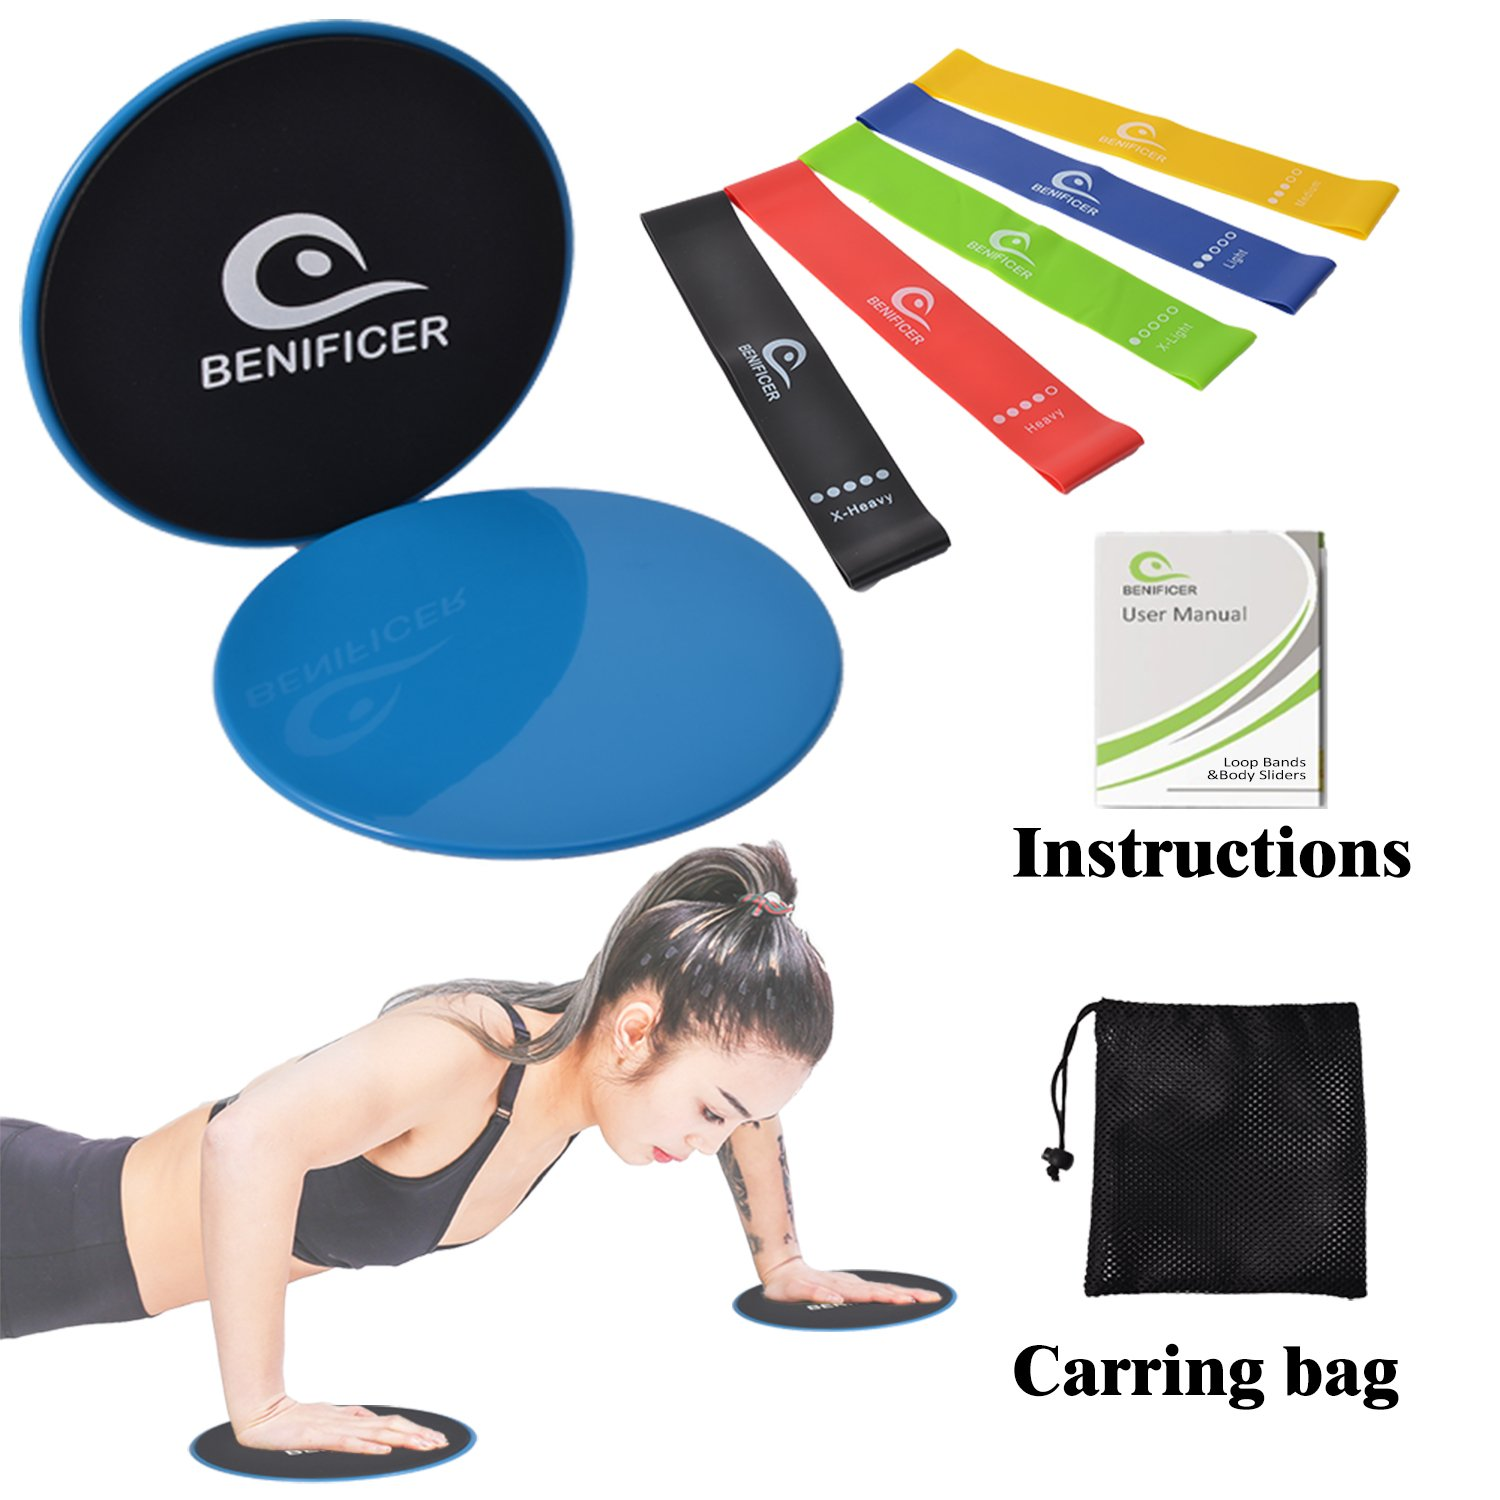 Benificer Core Sliders and Resistance Bands, Set of 5 Exercise Loop Bands with Set of 2 Double-sided Gliding Discs Workout for Fitness Home GYM Yoga,Pilates,Crossfit with Carry Bag and Instruction by Benificer (Image #1)